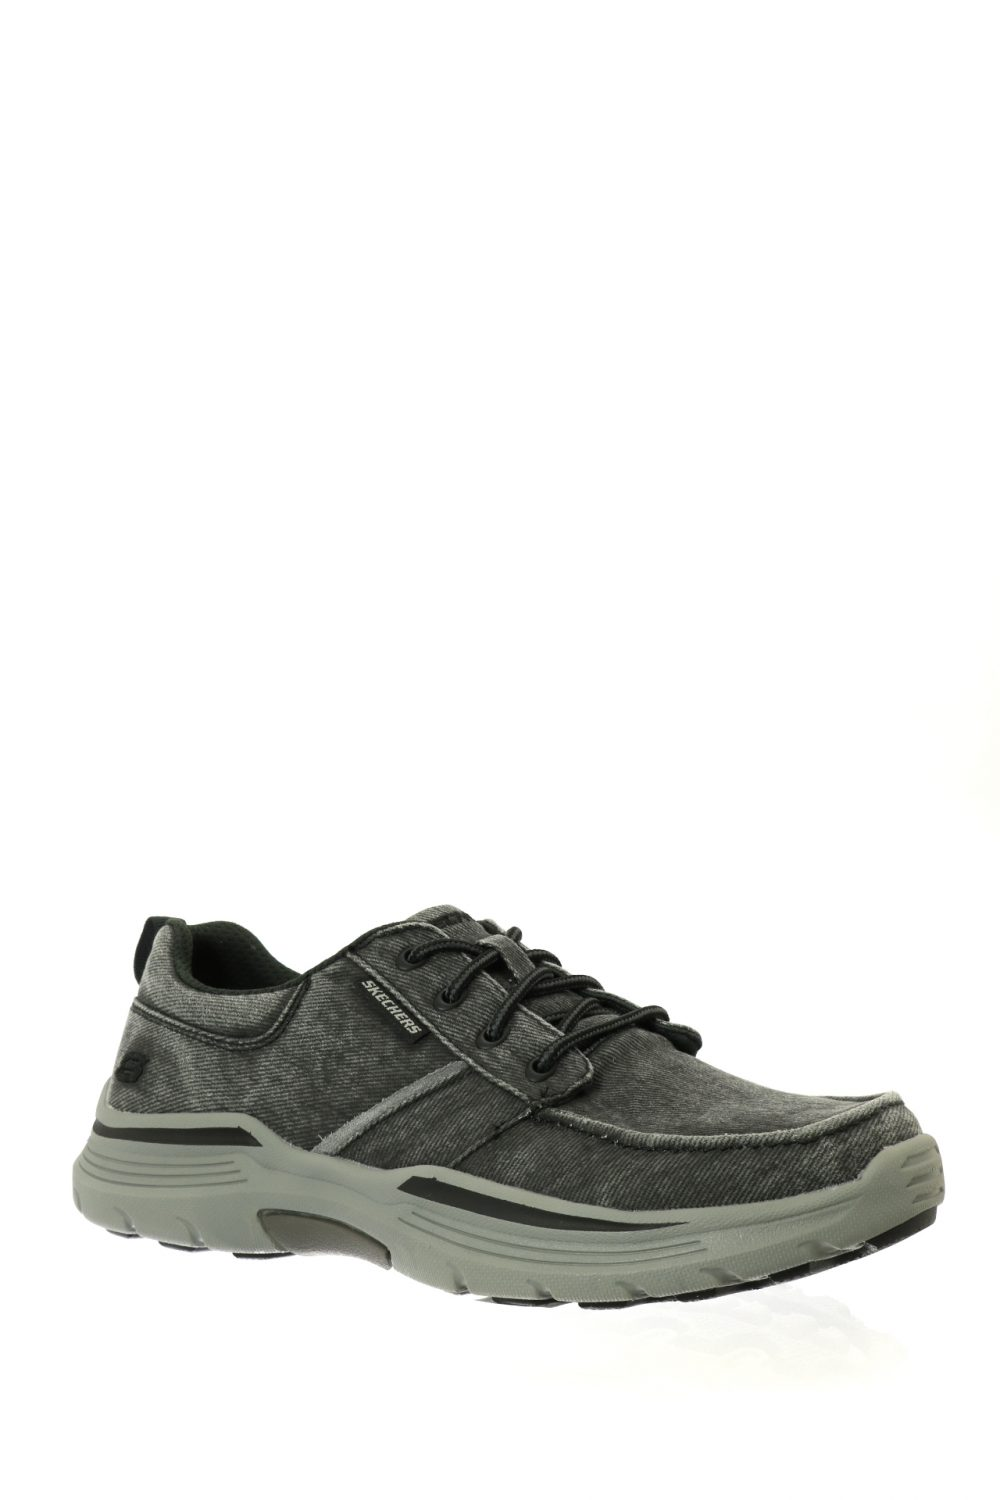 Skechers EXPENDED BERMO